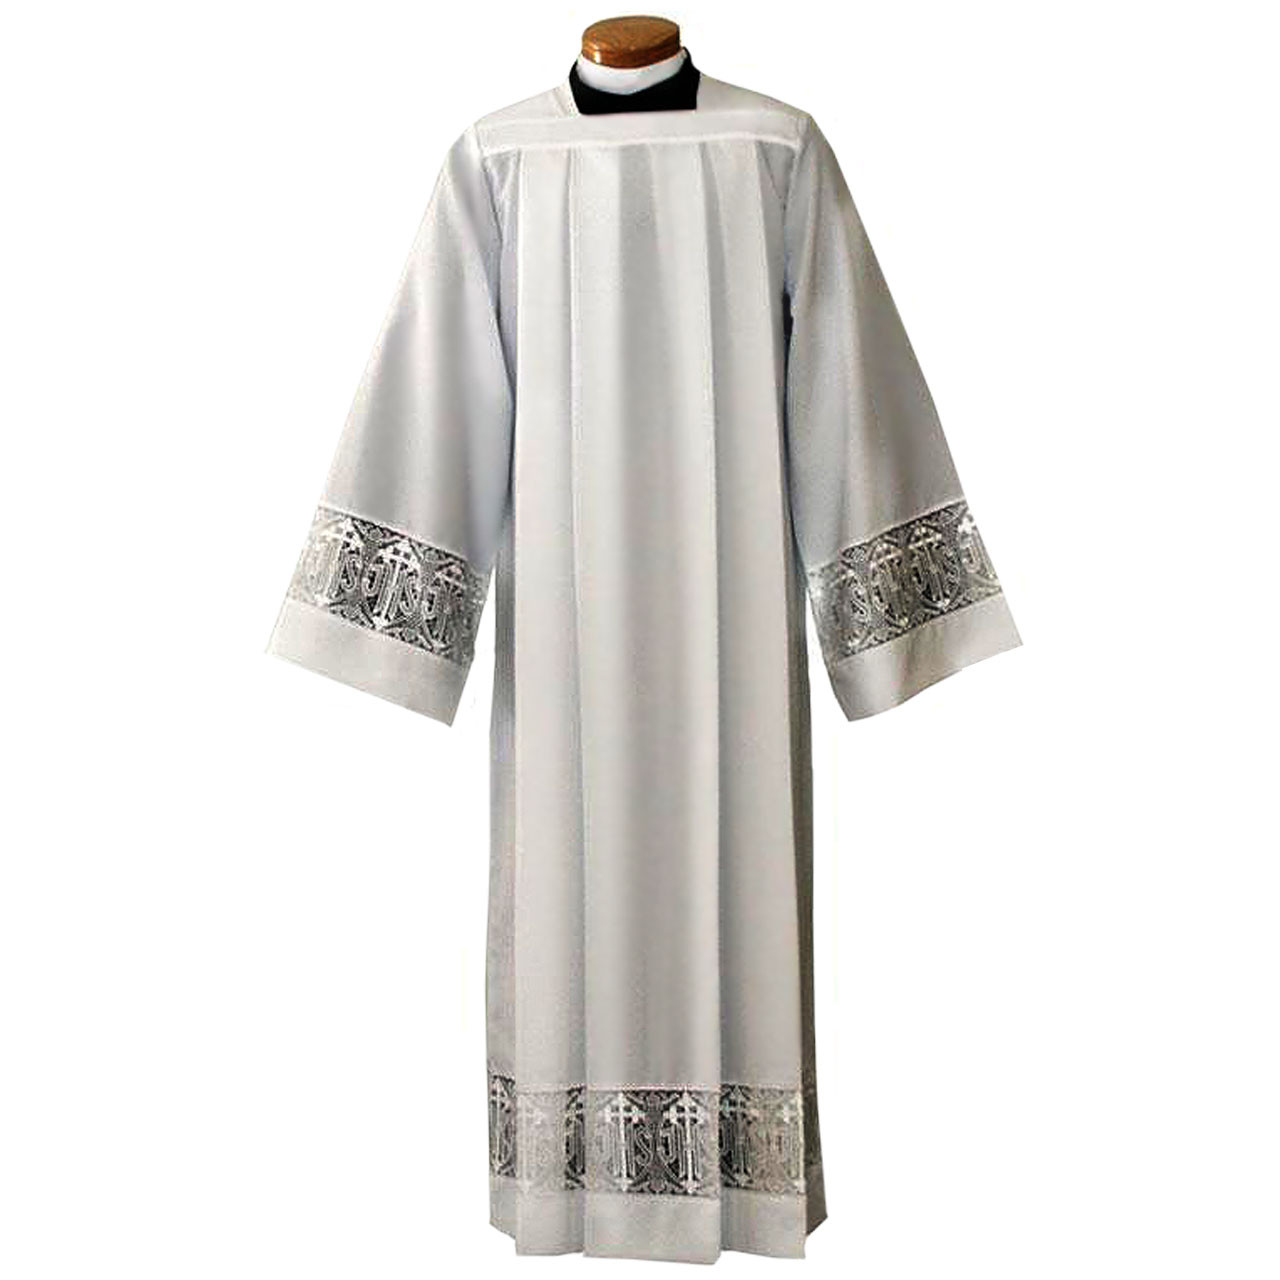 4216 Traditional Priest Alb from Beau Veste